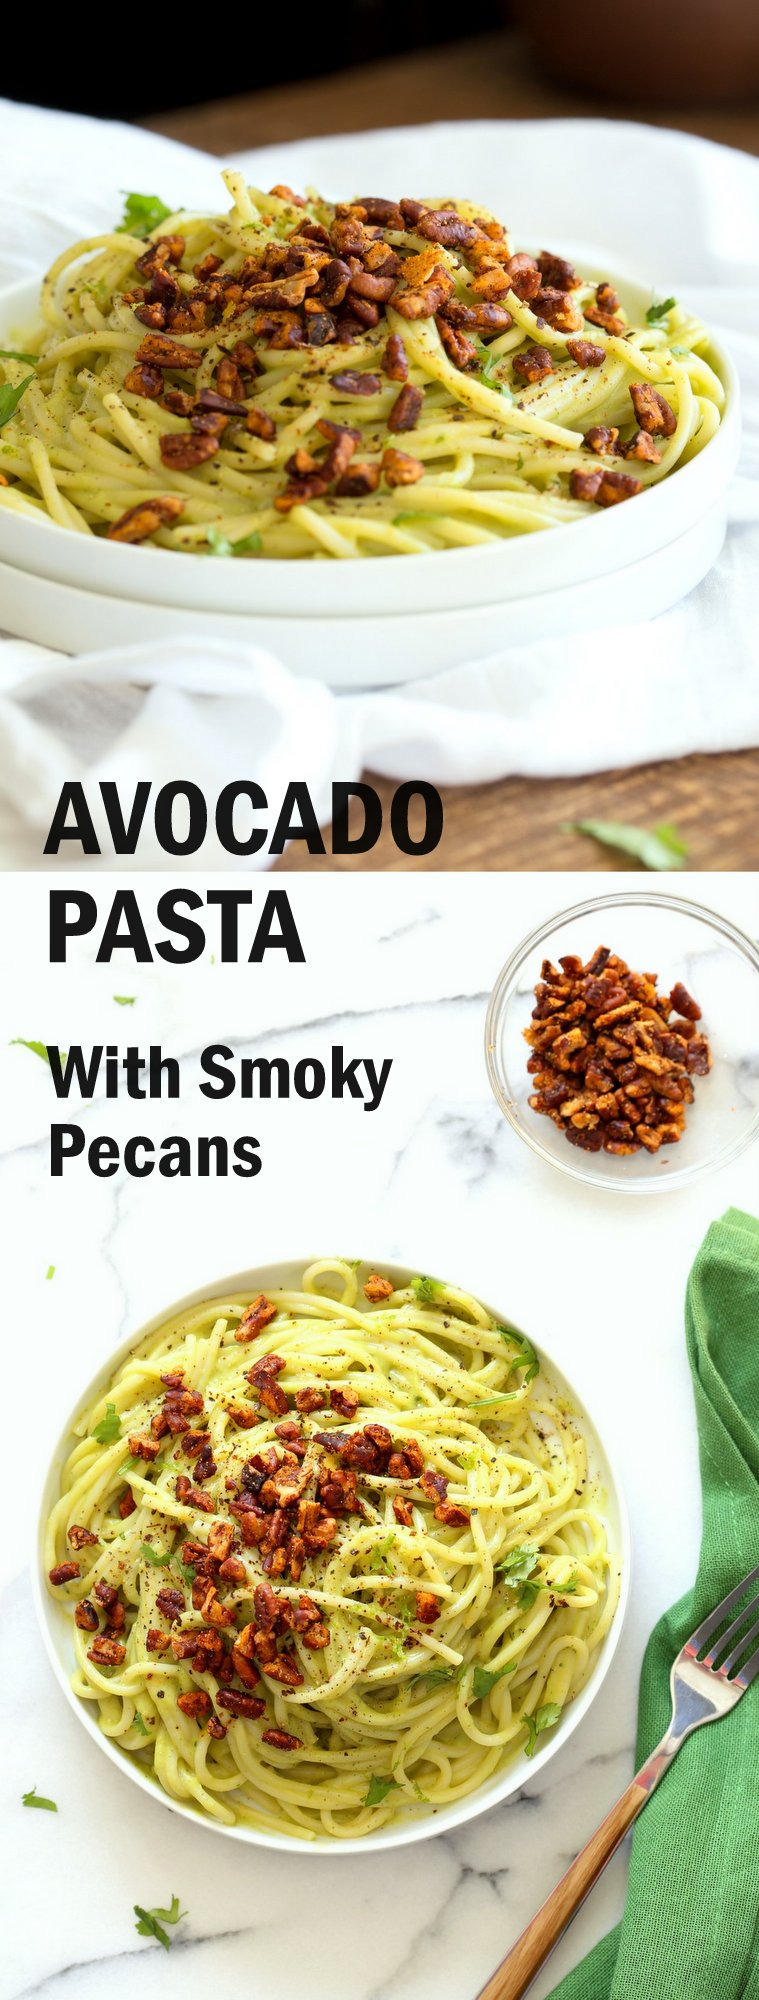 Vegan Avocado Pasta with Smoky Pecans. This 20 Minute Creamy Avocado Basil Sauce is great over spaghetti or zoodles. Serve with smoky spicy pecans for amazing flavor.  #Vegan #Soyfree #Recipe. Can be #nutfree. #veganricha | VeganRicha.com